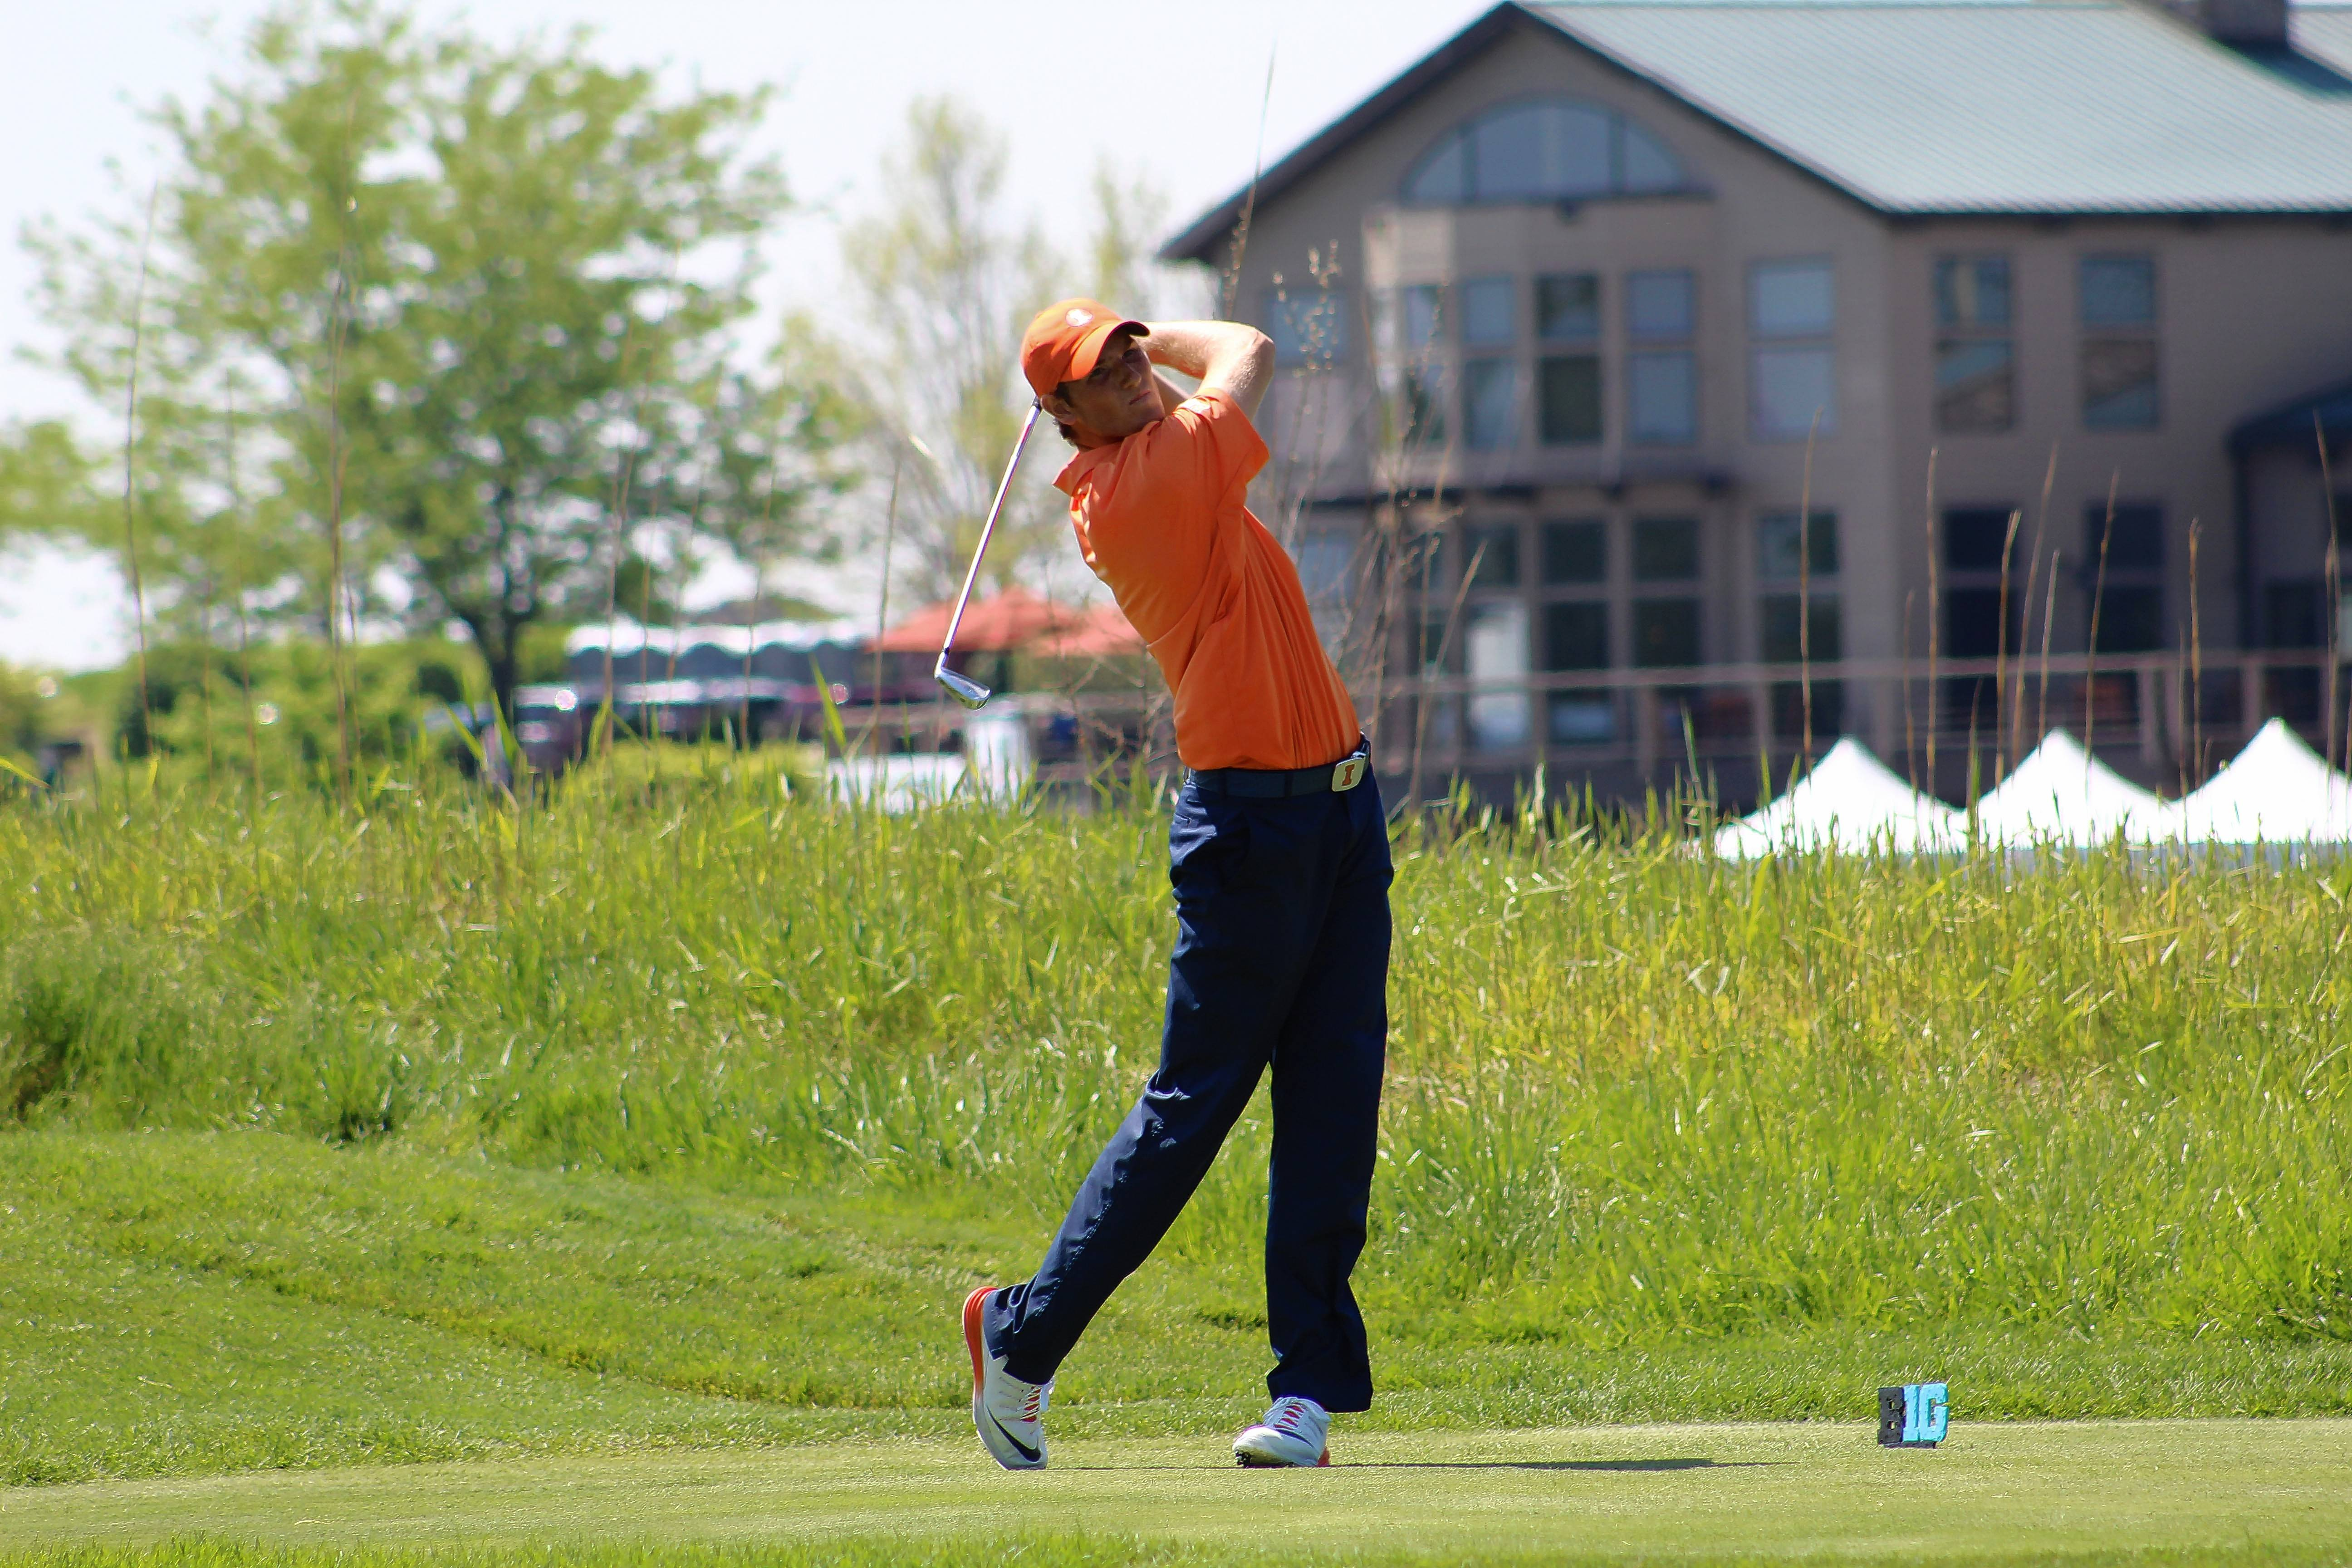 Charlie Danielson helped the Illini golf team finish second in the NCAA stroke-play tournament. But Illinois' season came to an end for the second straight year in the semifinals of the national championship.